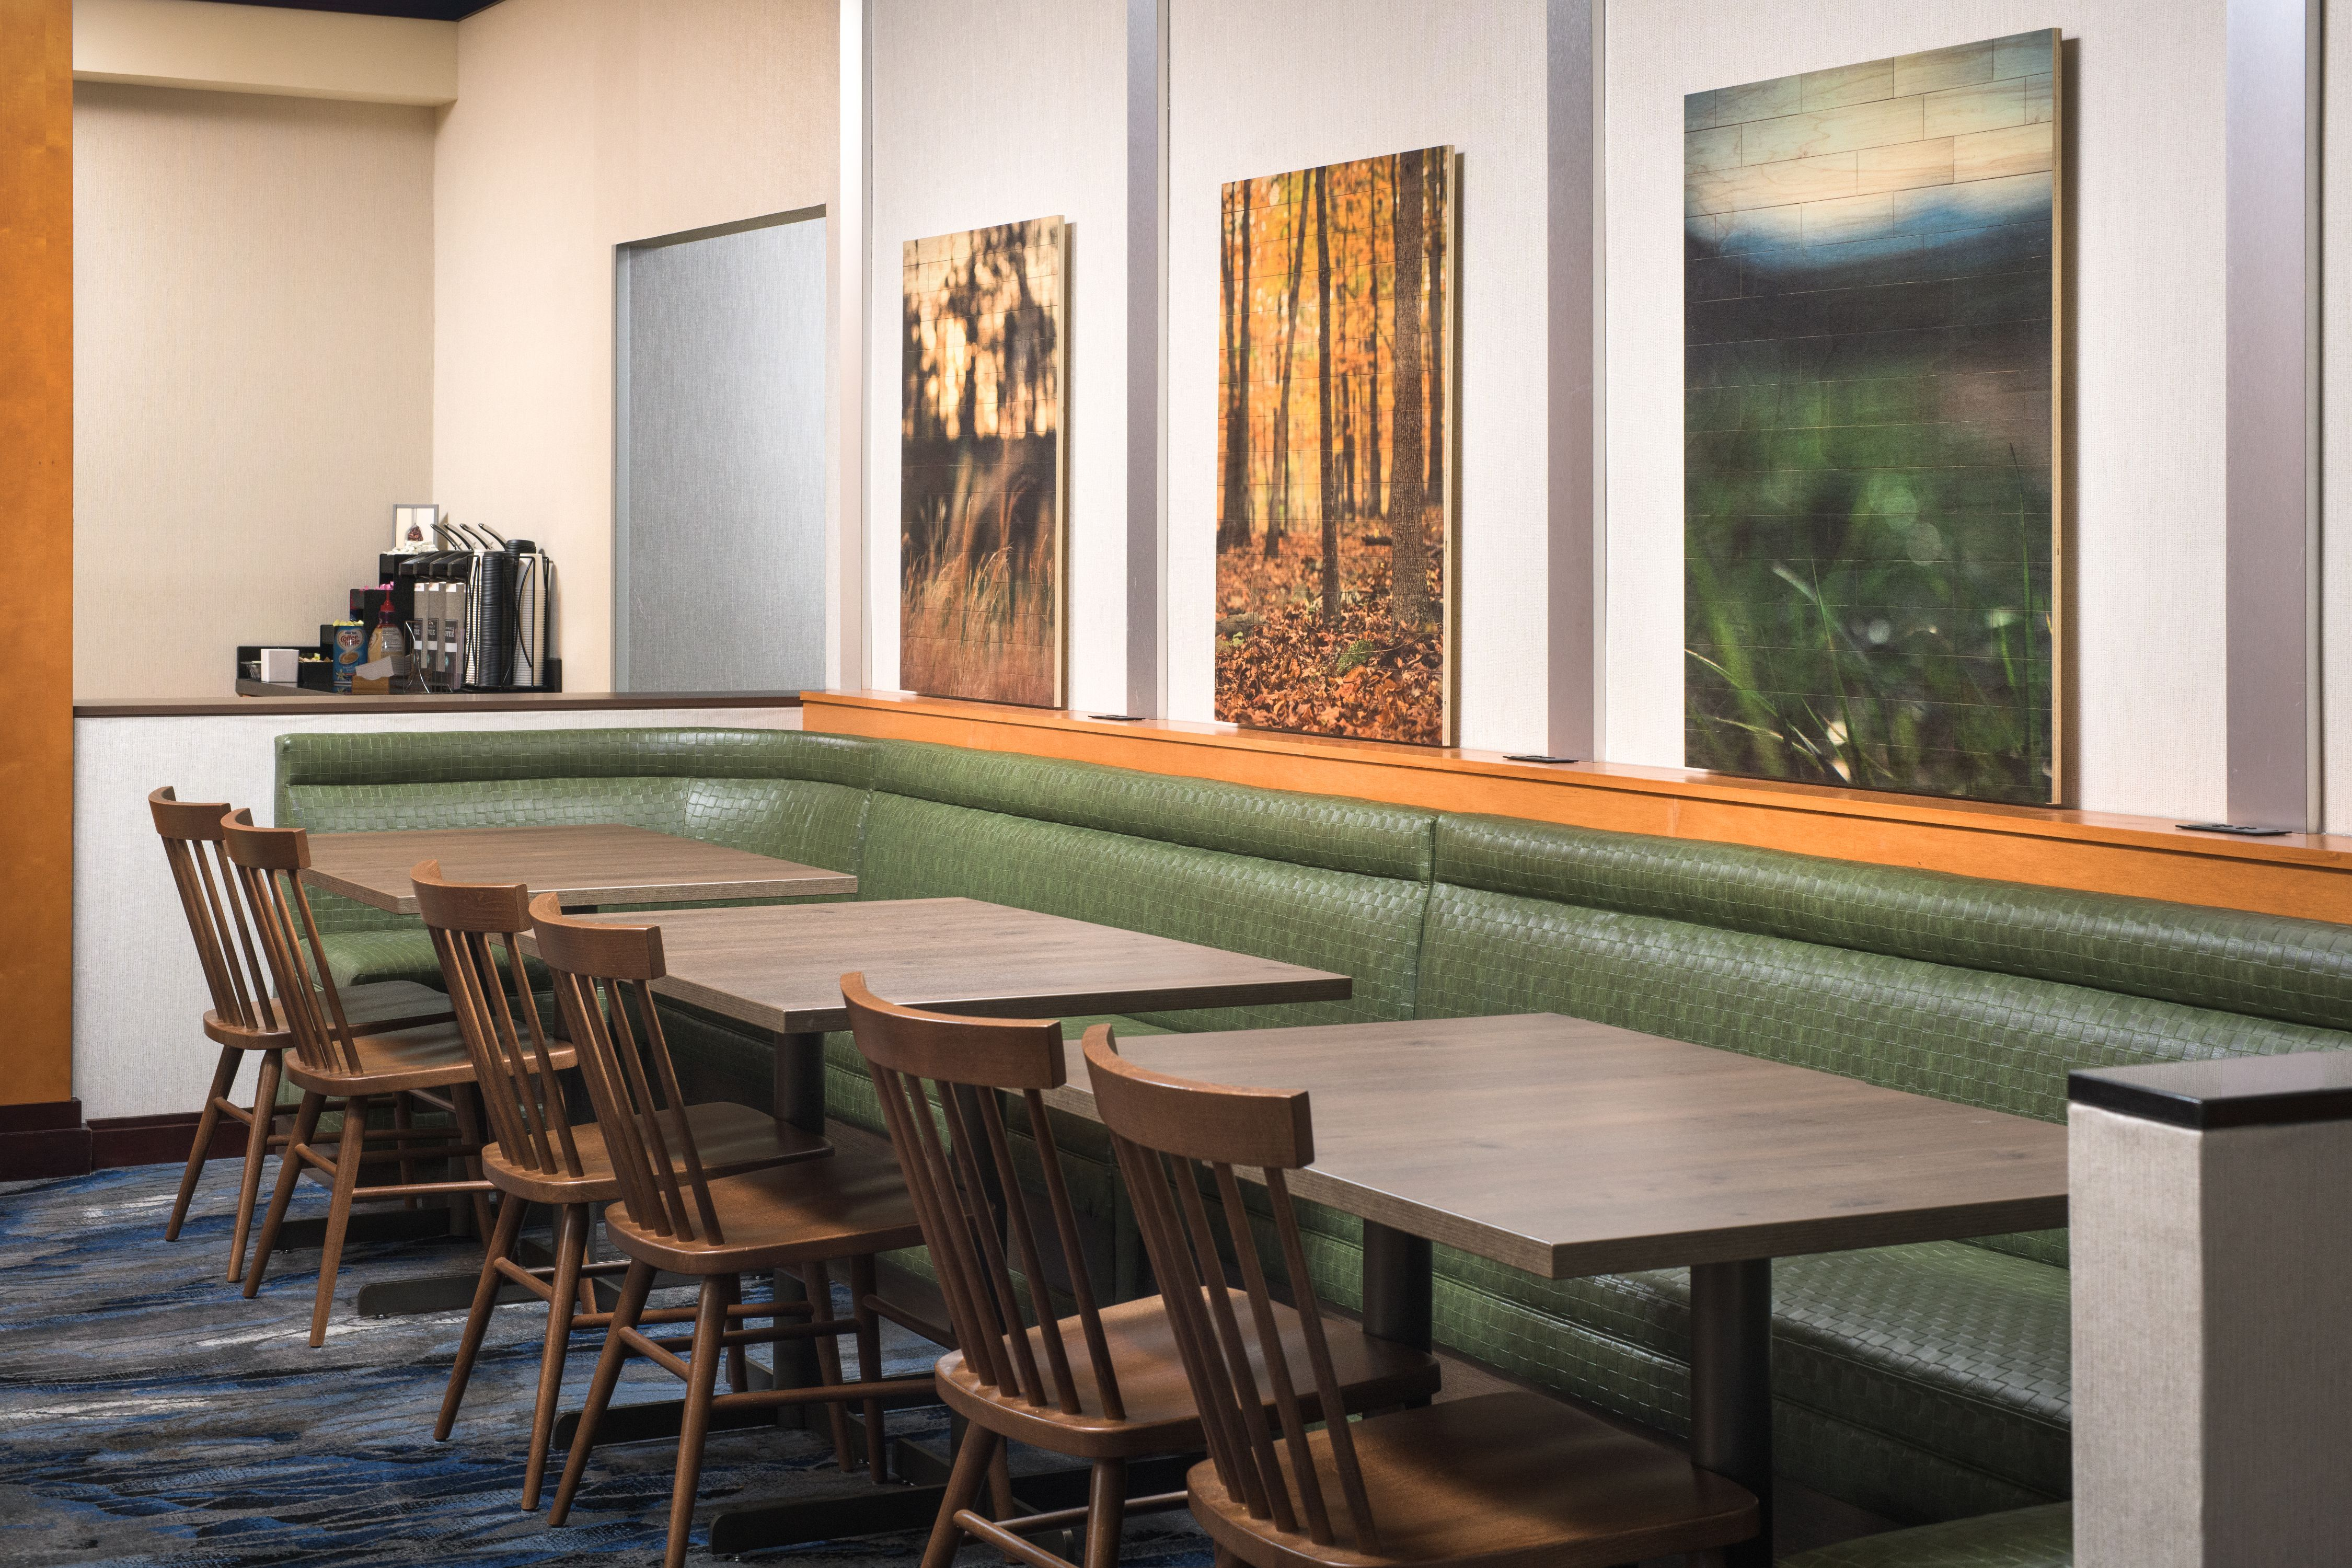 Fairfield Inn & Suites by Marriott Chattanooga I-24/Lookout Mountain image 8